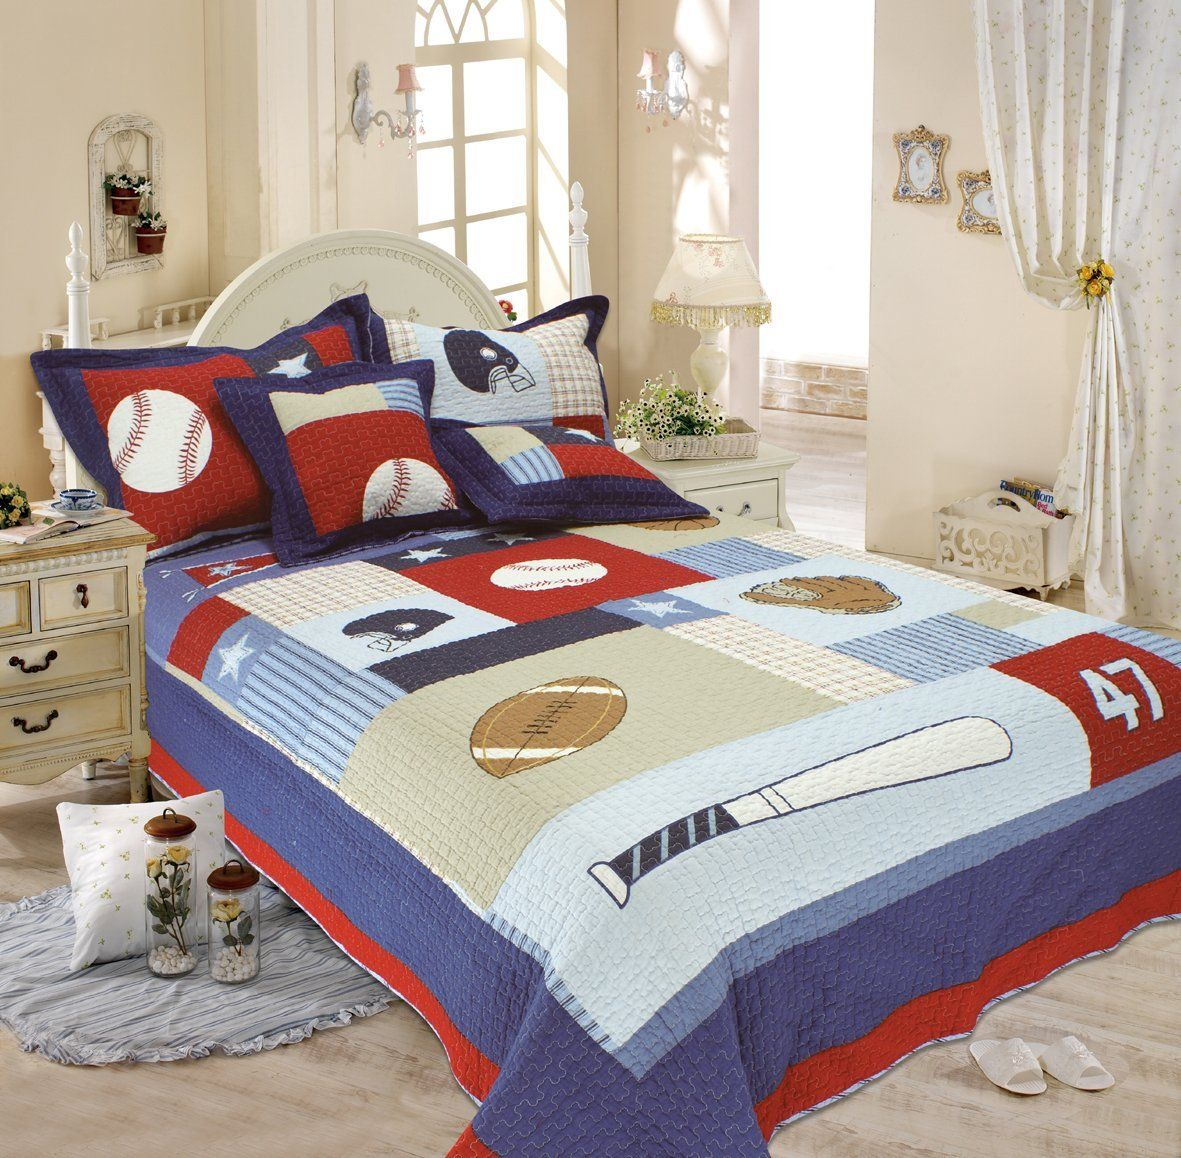 MakeTop Classic Sports Baseball American Football Kids Boys Quilt Set 2pc Full Price